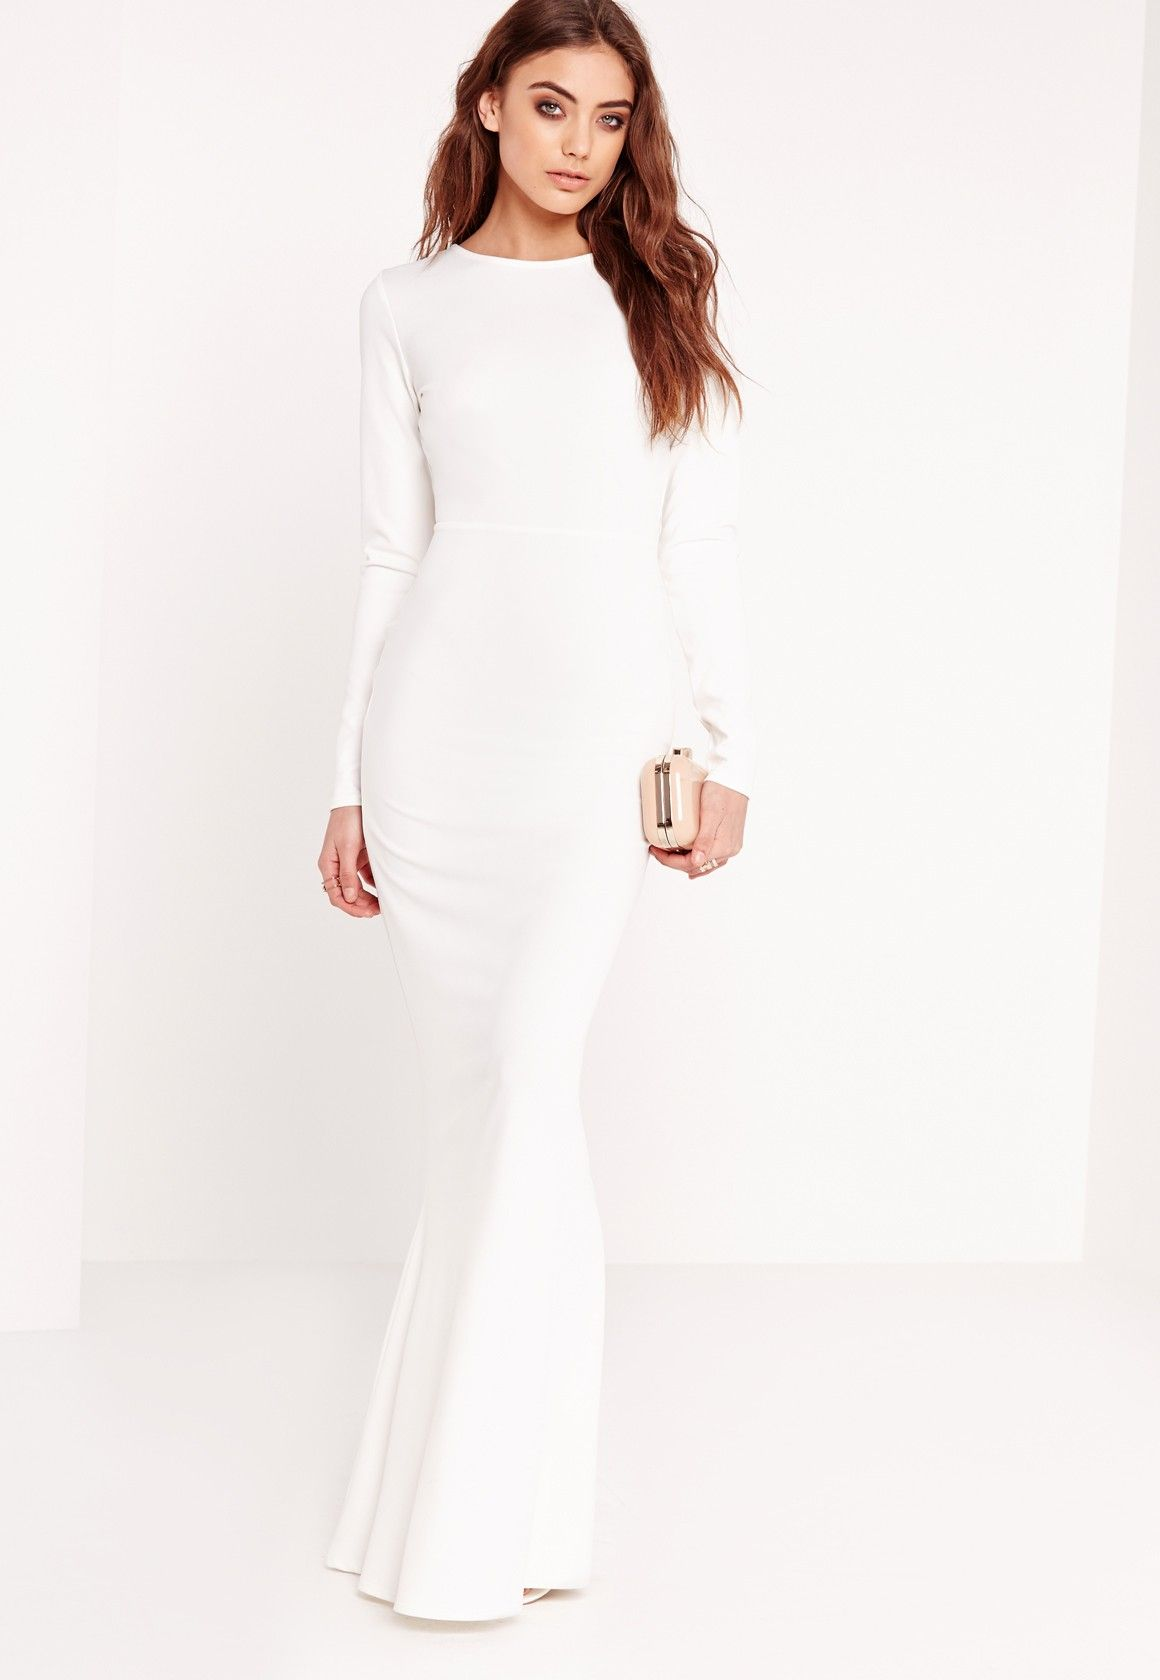 e247e6efec2 We re totally girl crushin on this long sleeve maxi dress in a sexy white  shade. With an open back finish